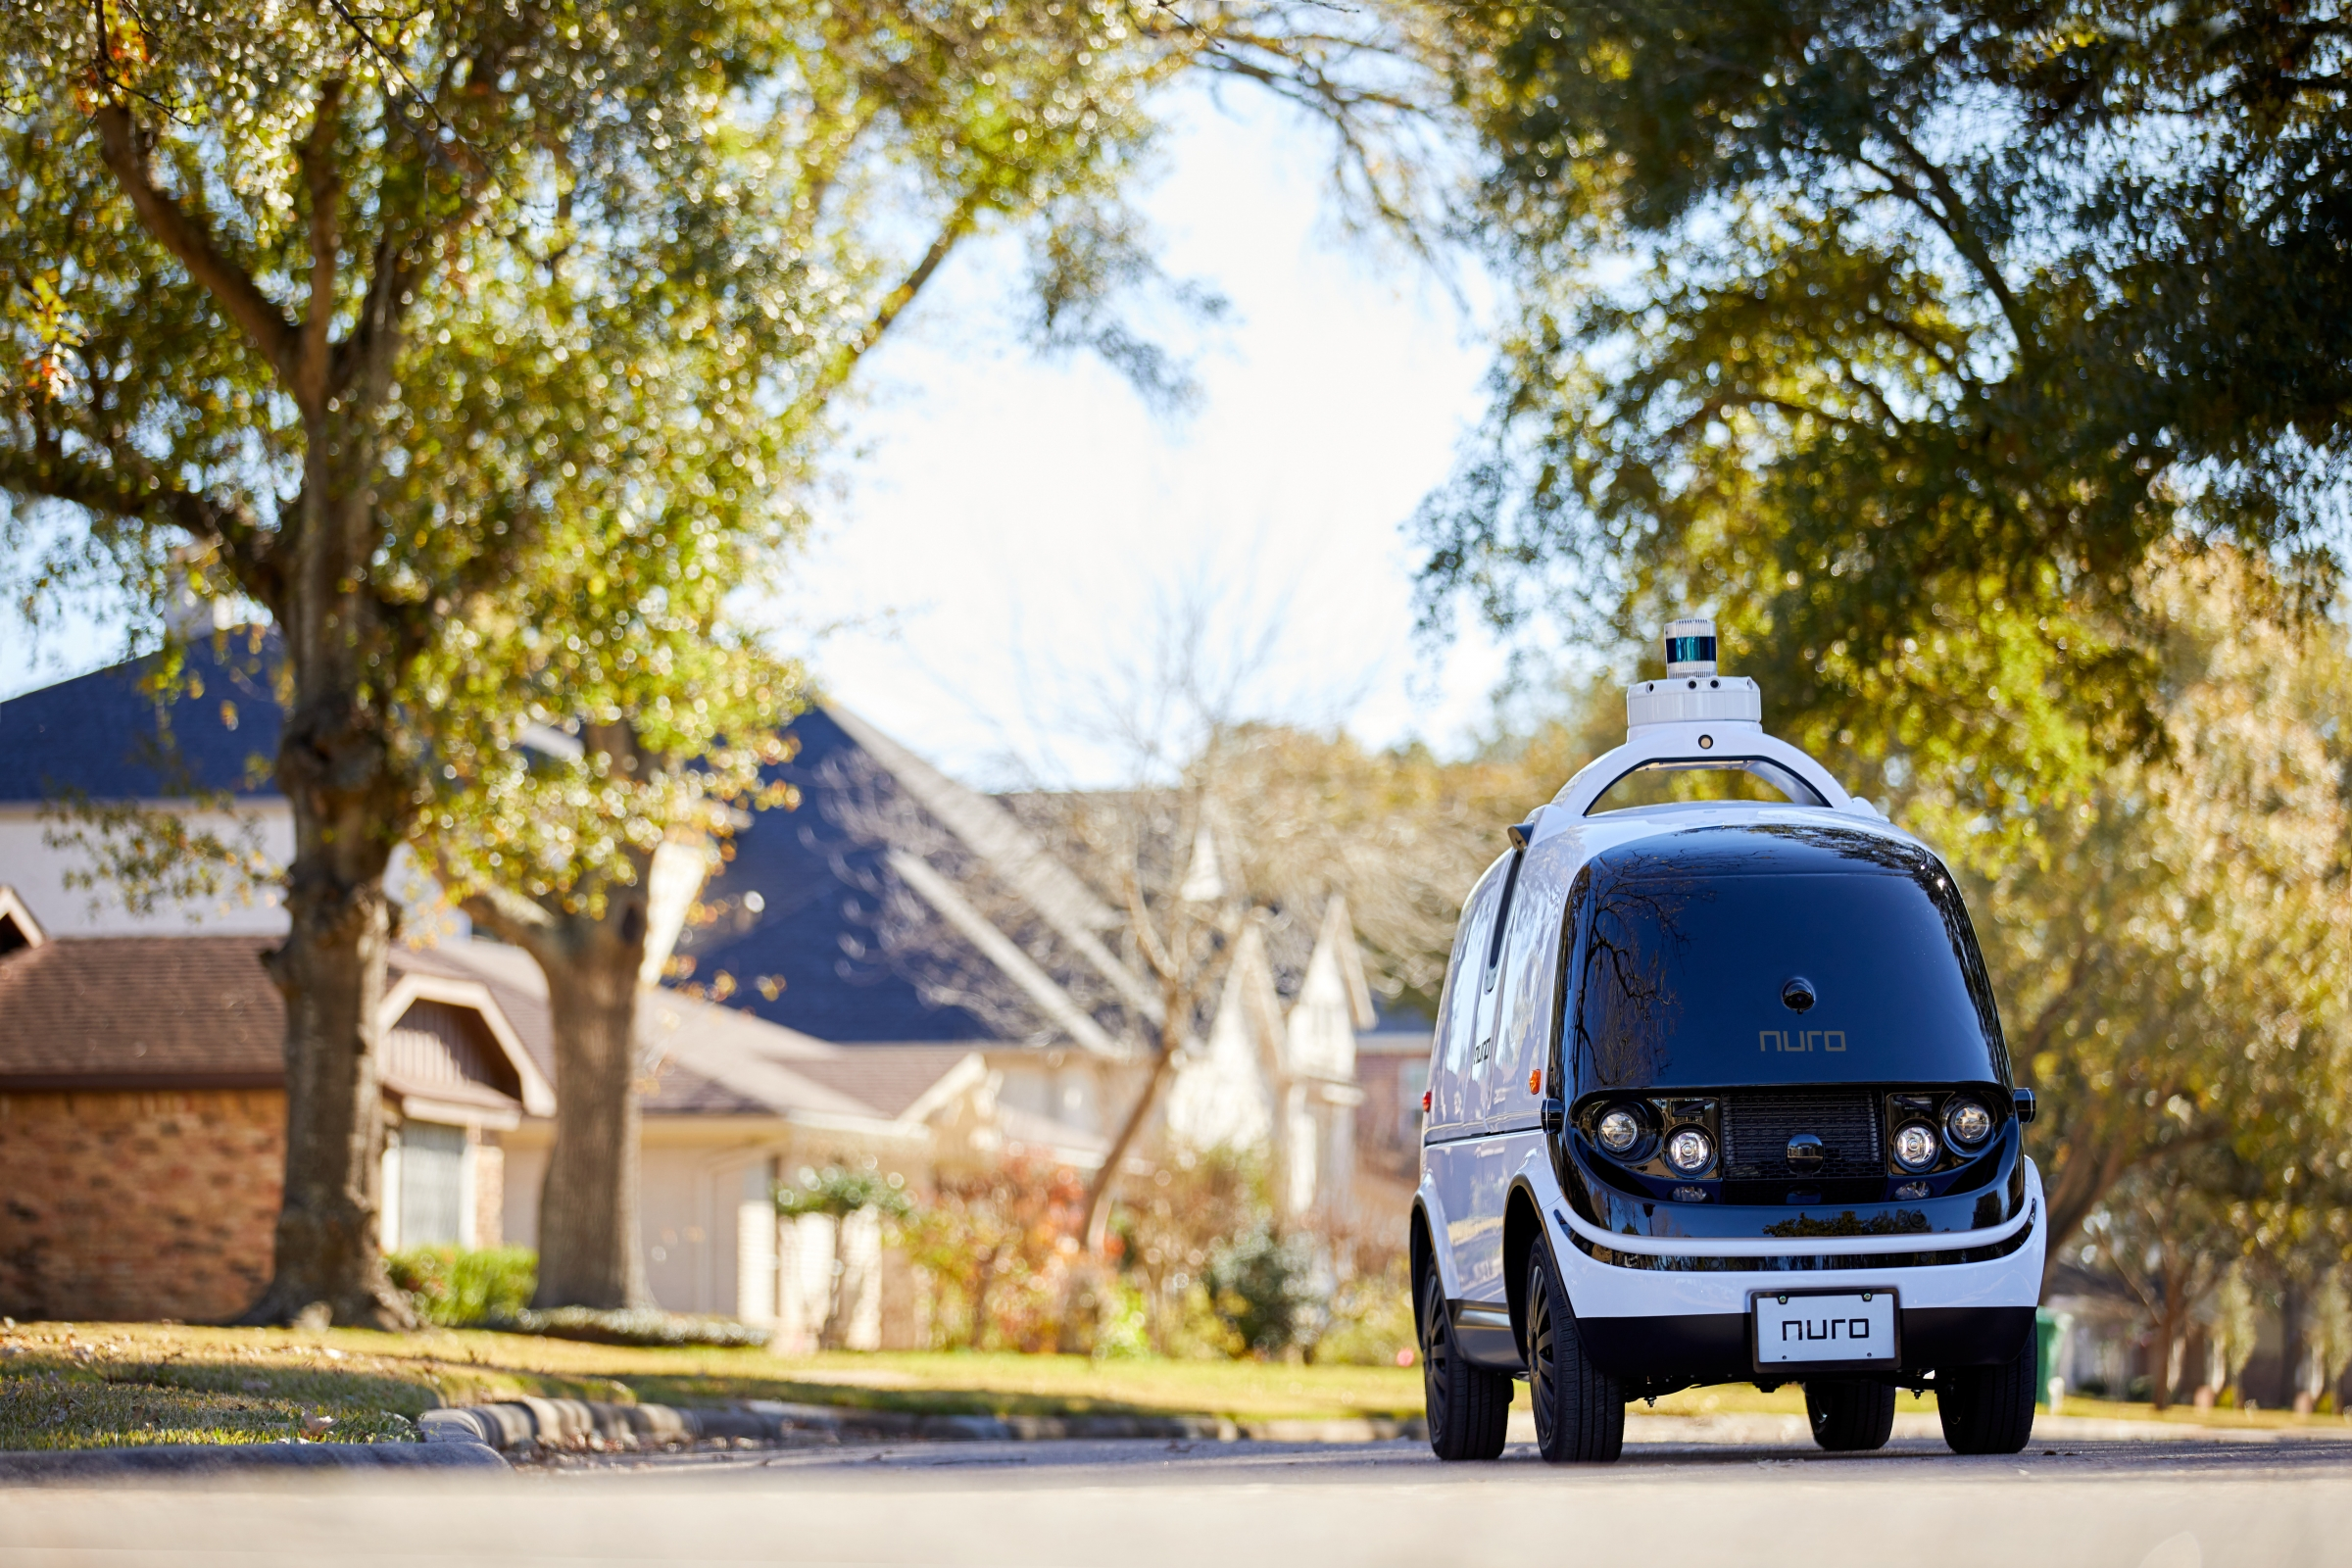 Mountain View tech startup Nuro lands state's first autonomous vehicle permit - Palo Alto Online